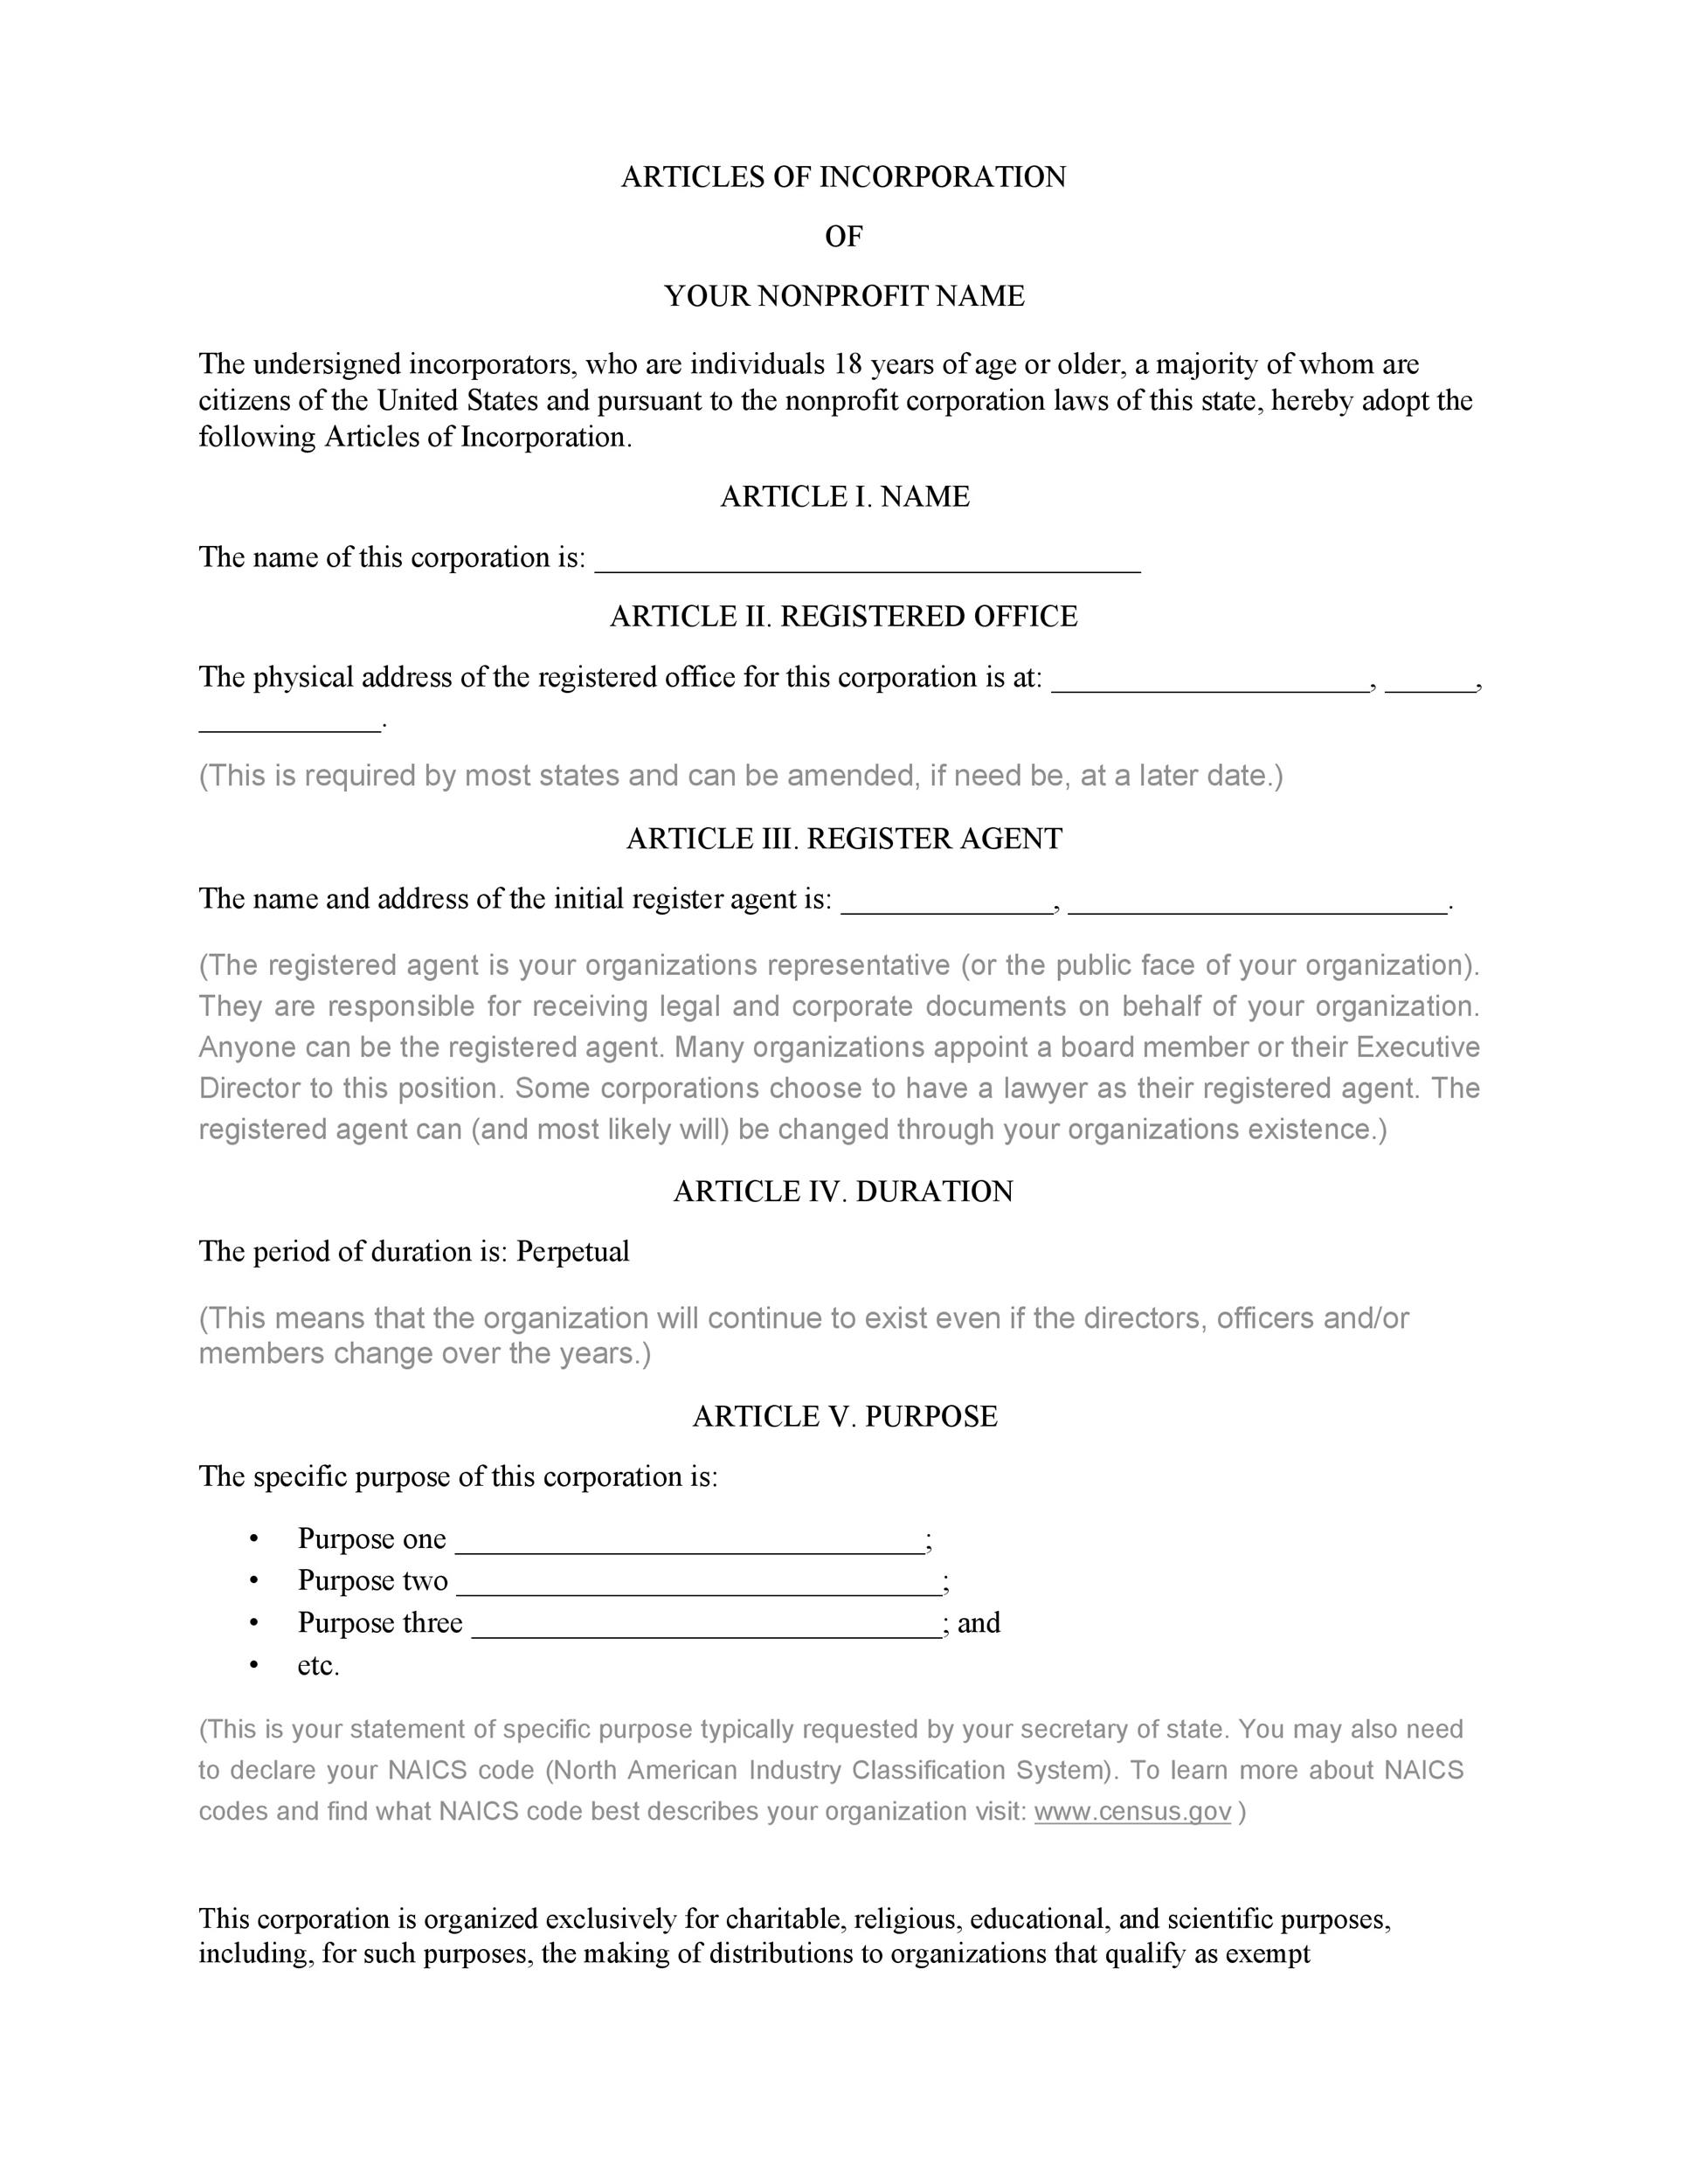 Free articles of incorporation template 20